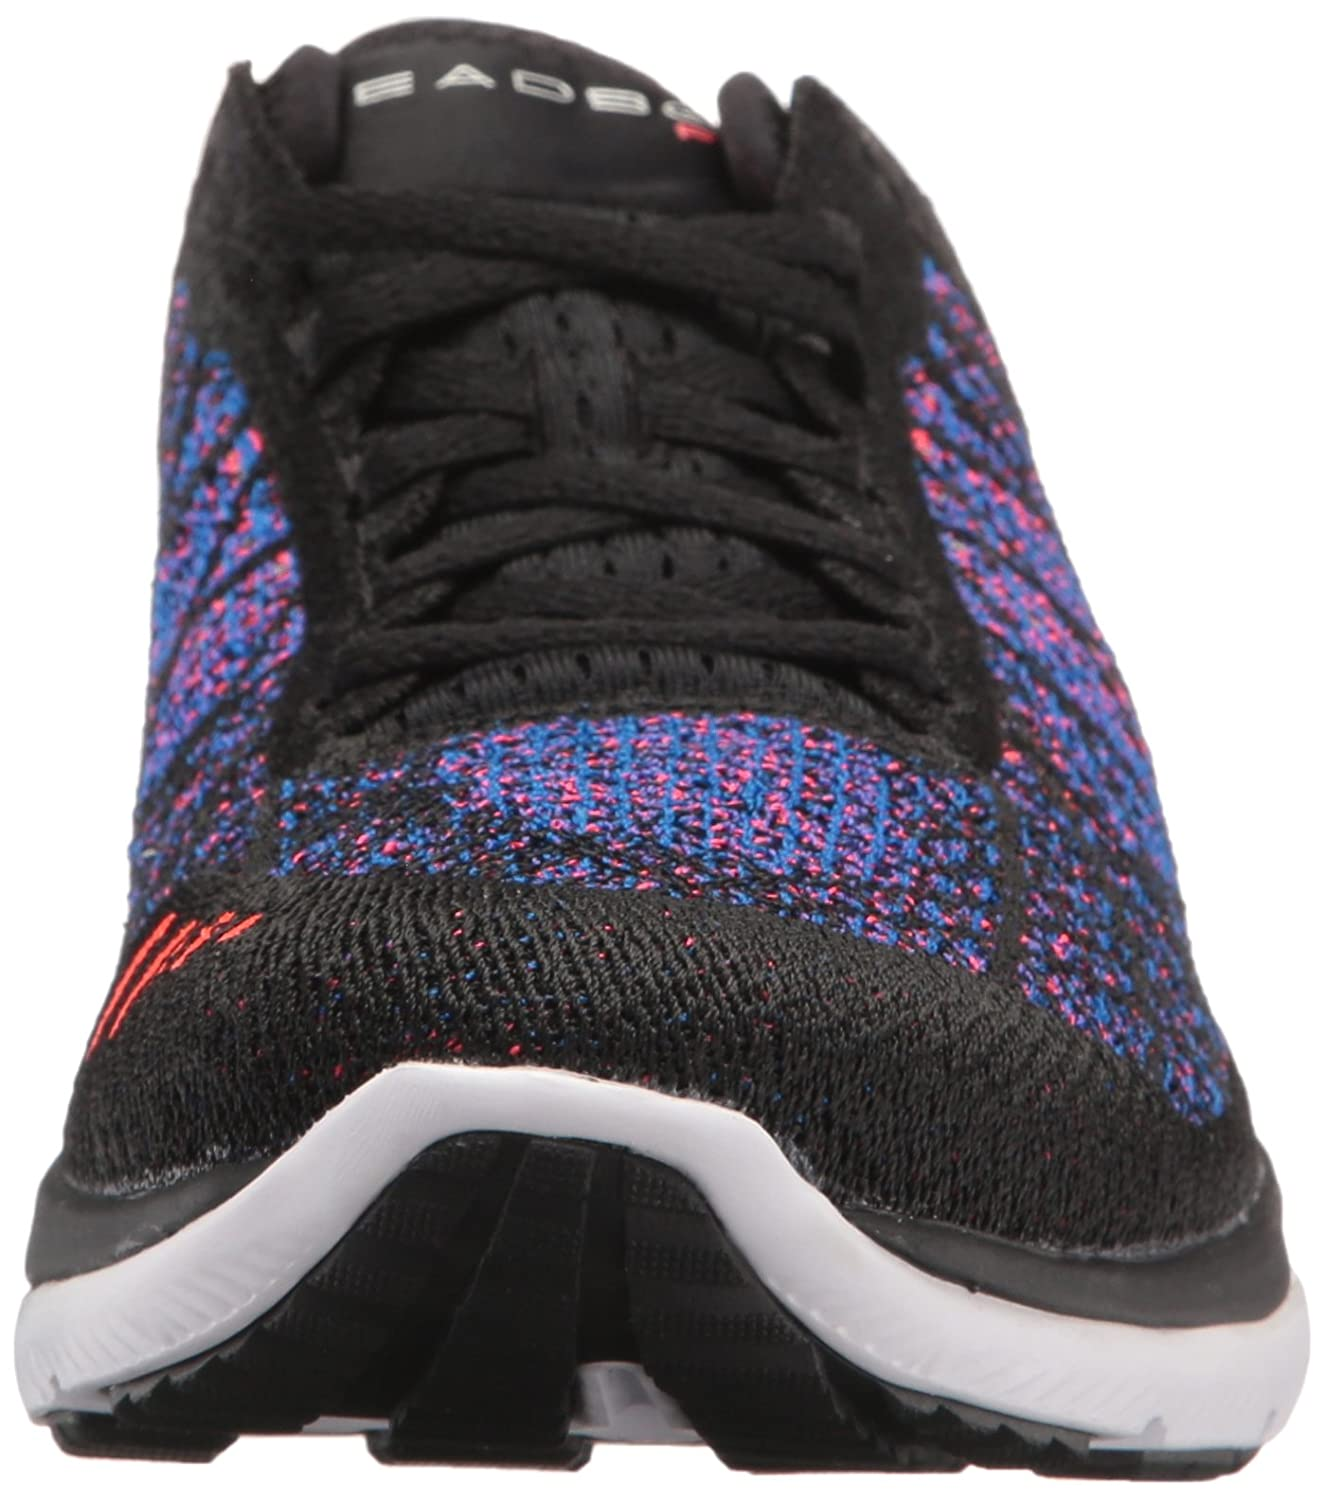 Under Armour Women's Threadborne 7.5 Fortis Running Shoe B01N9GWM6Y 7.5 Threadborne M US|Black (003)/Lapis Blue d6d97e